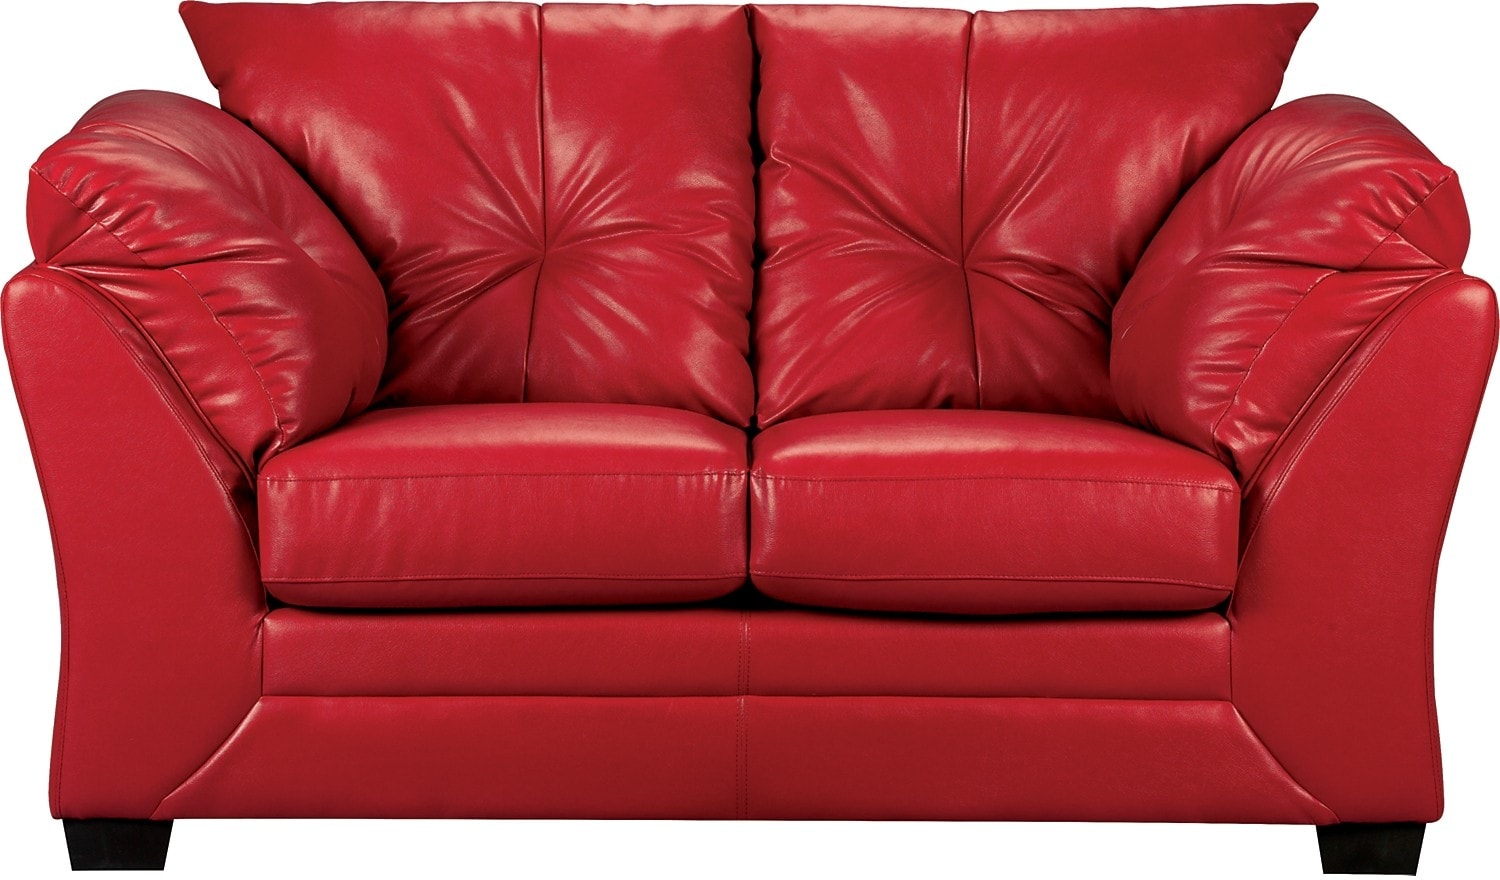 Living Room Furniture - Max Faux Leather Loveseat - Red